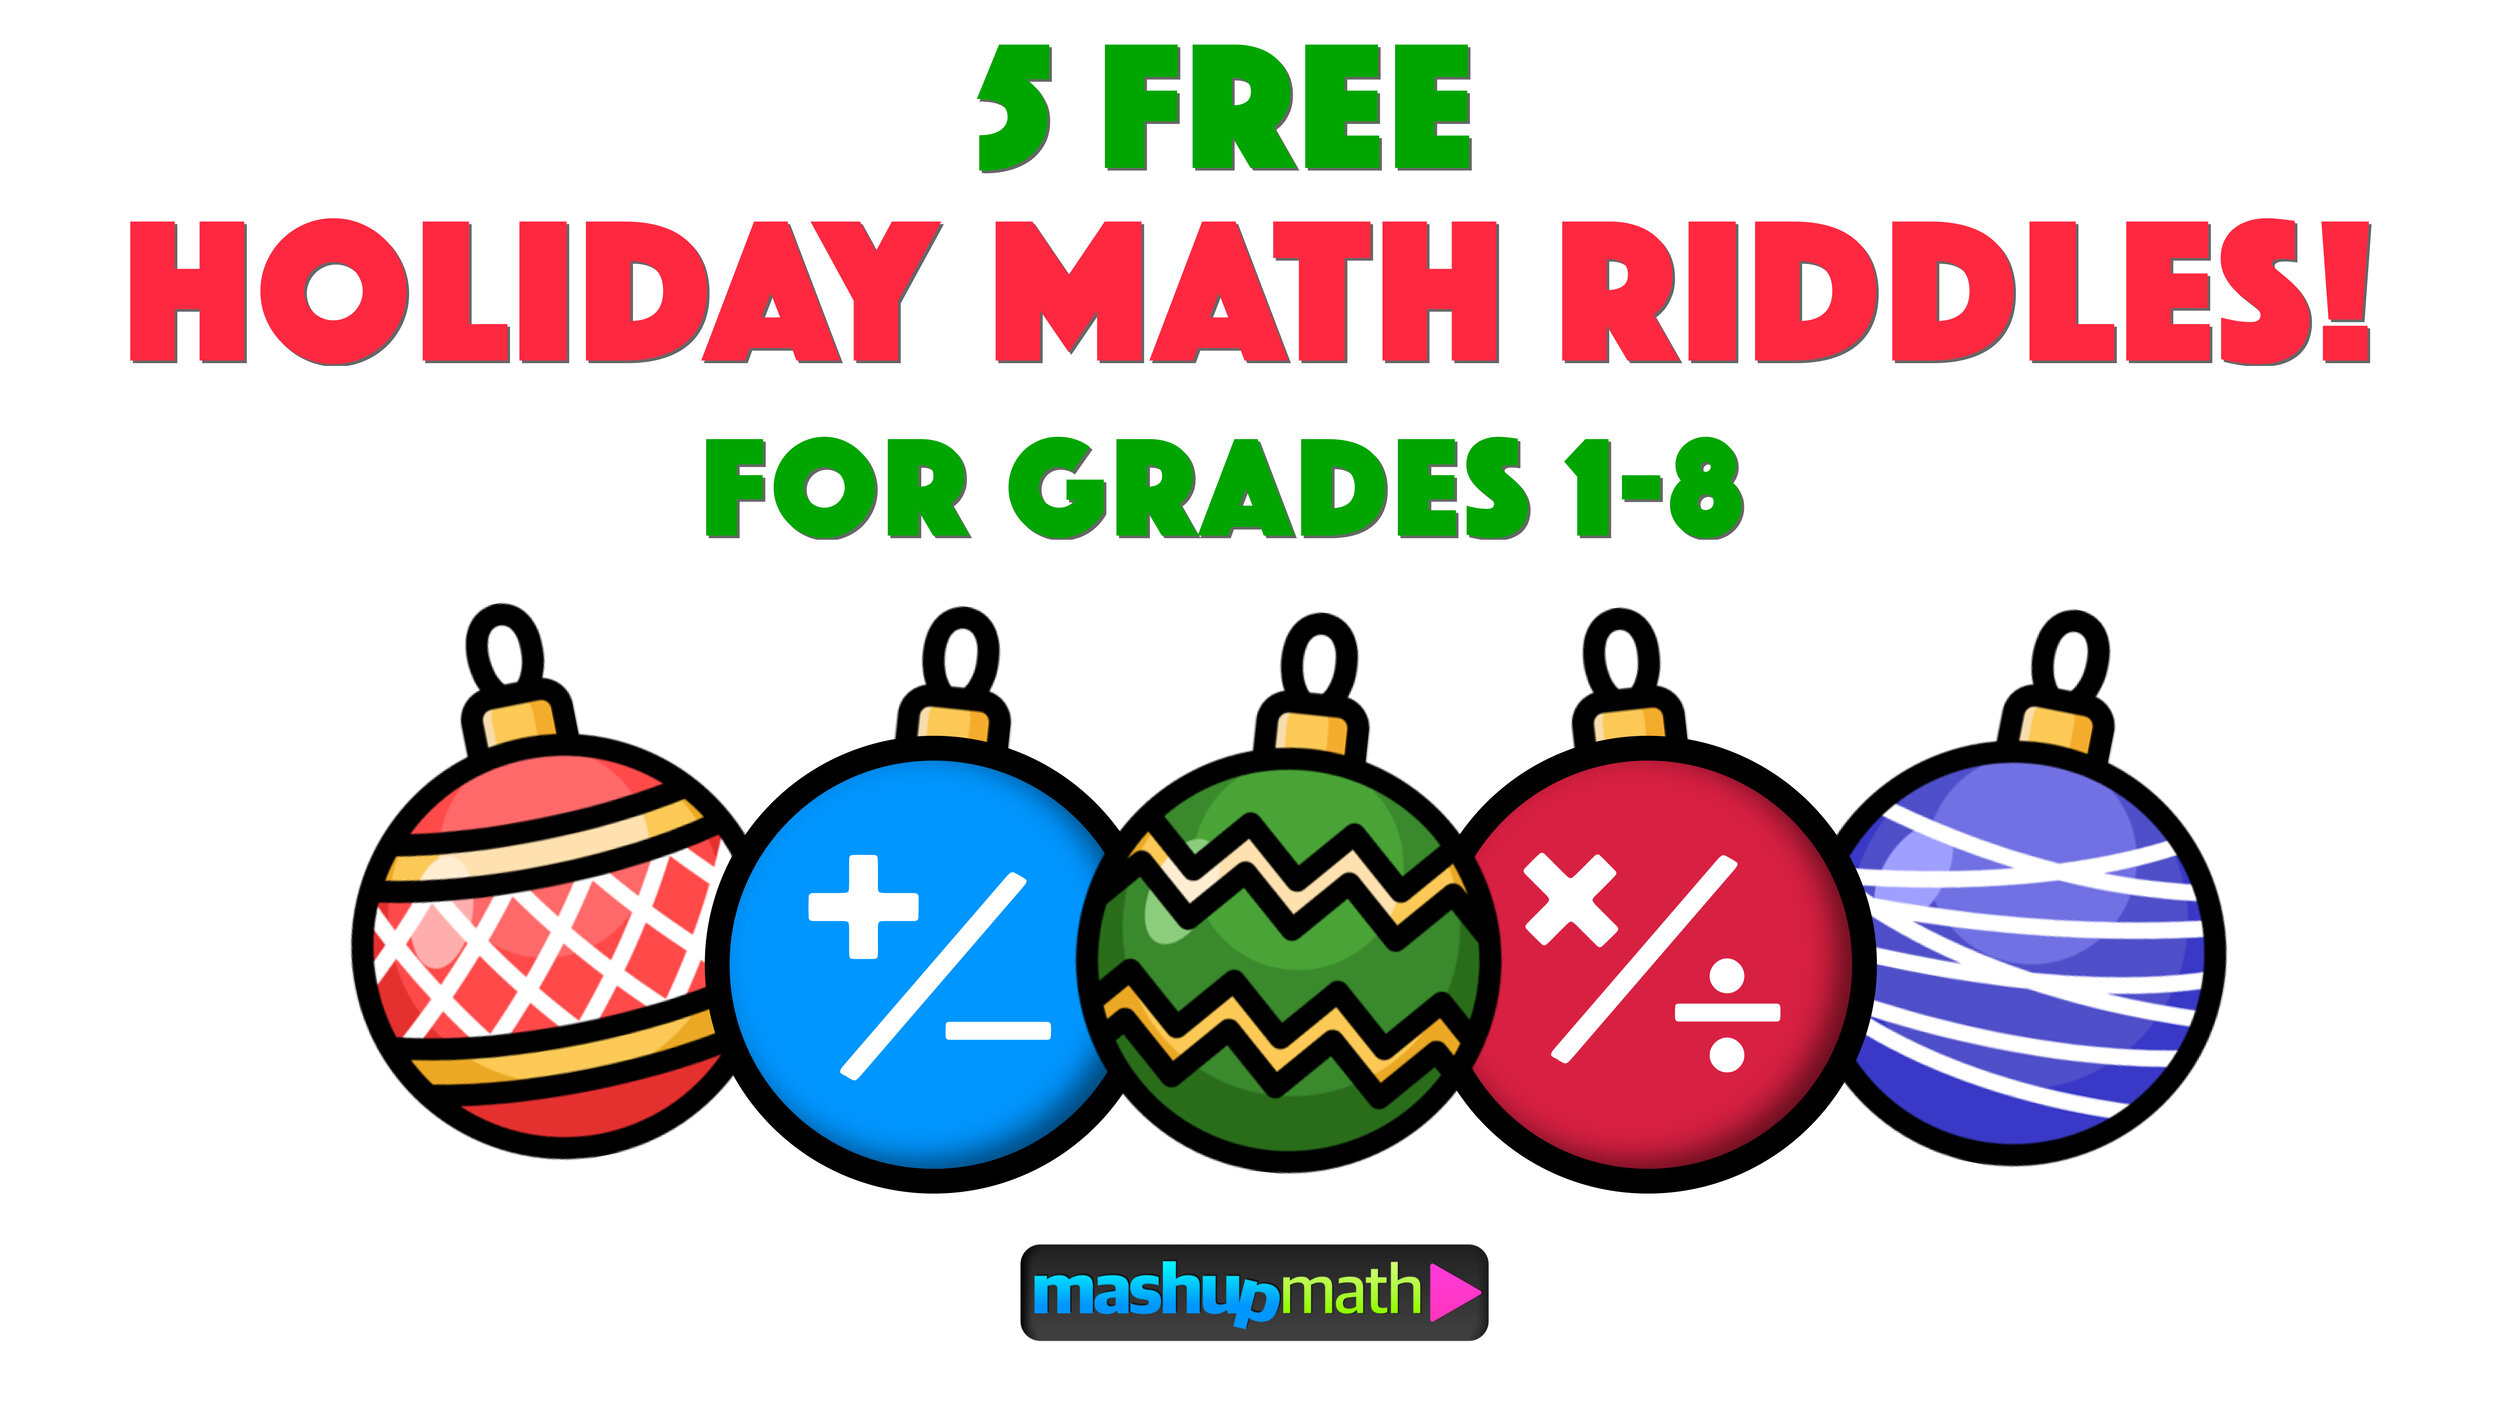 5 Fun Christmas Math Riddles and Brain Teasers for Grades 1